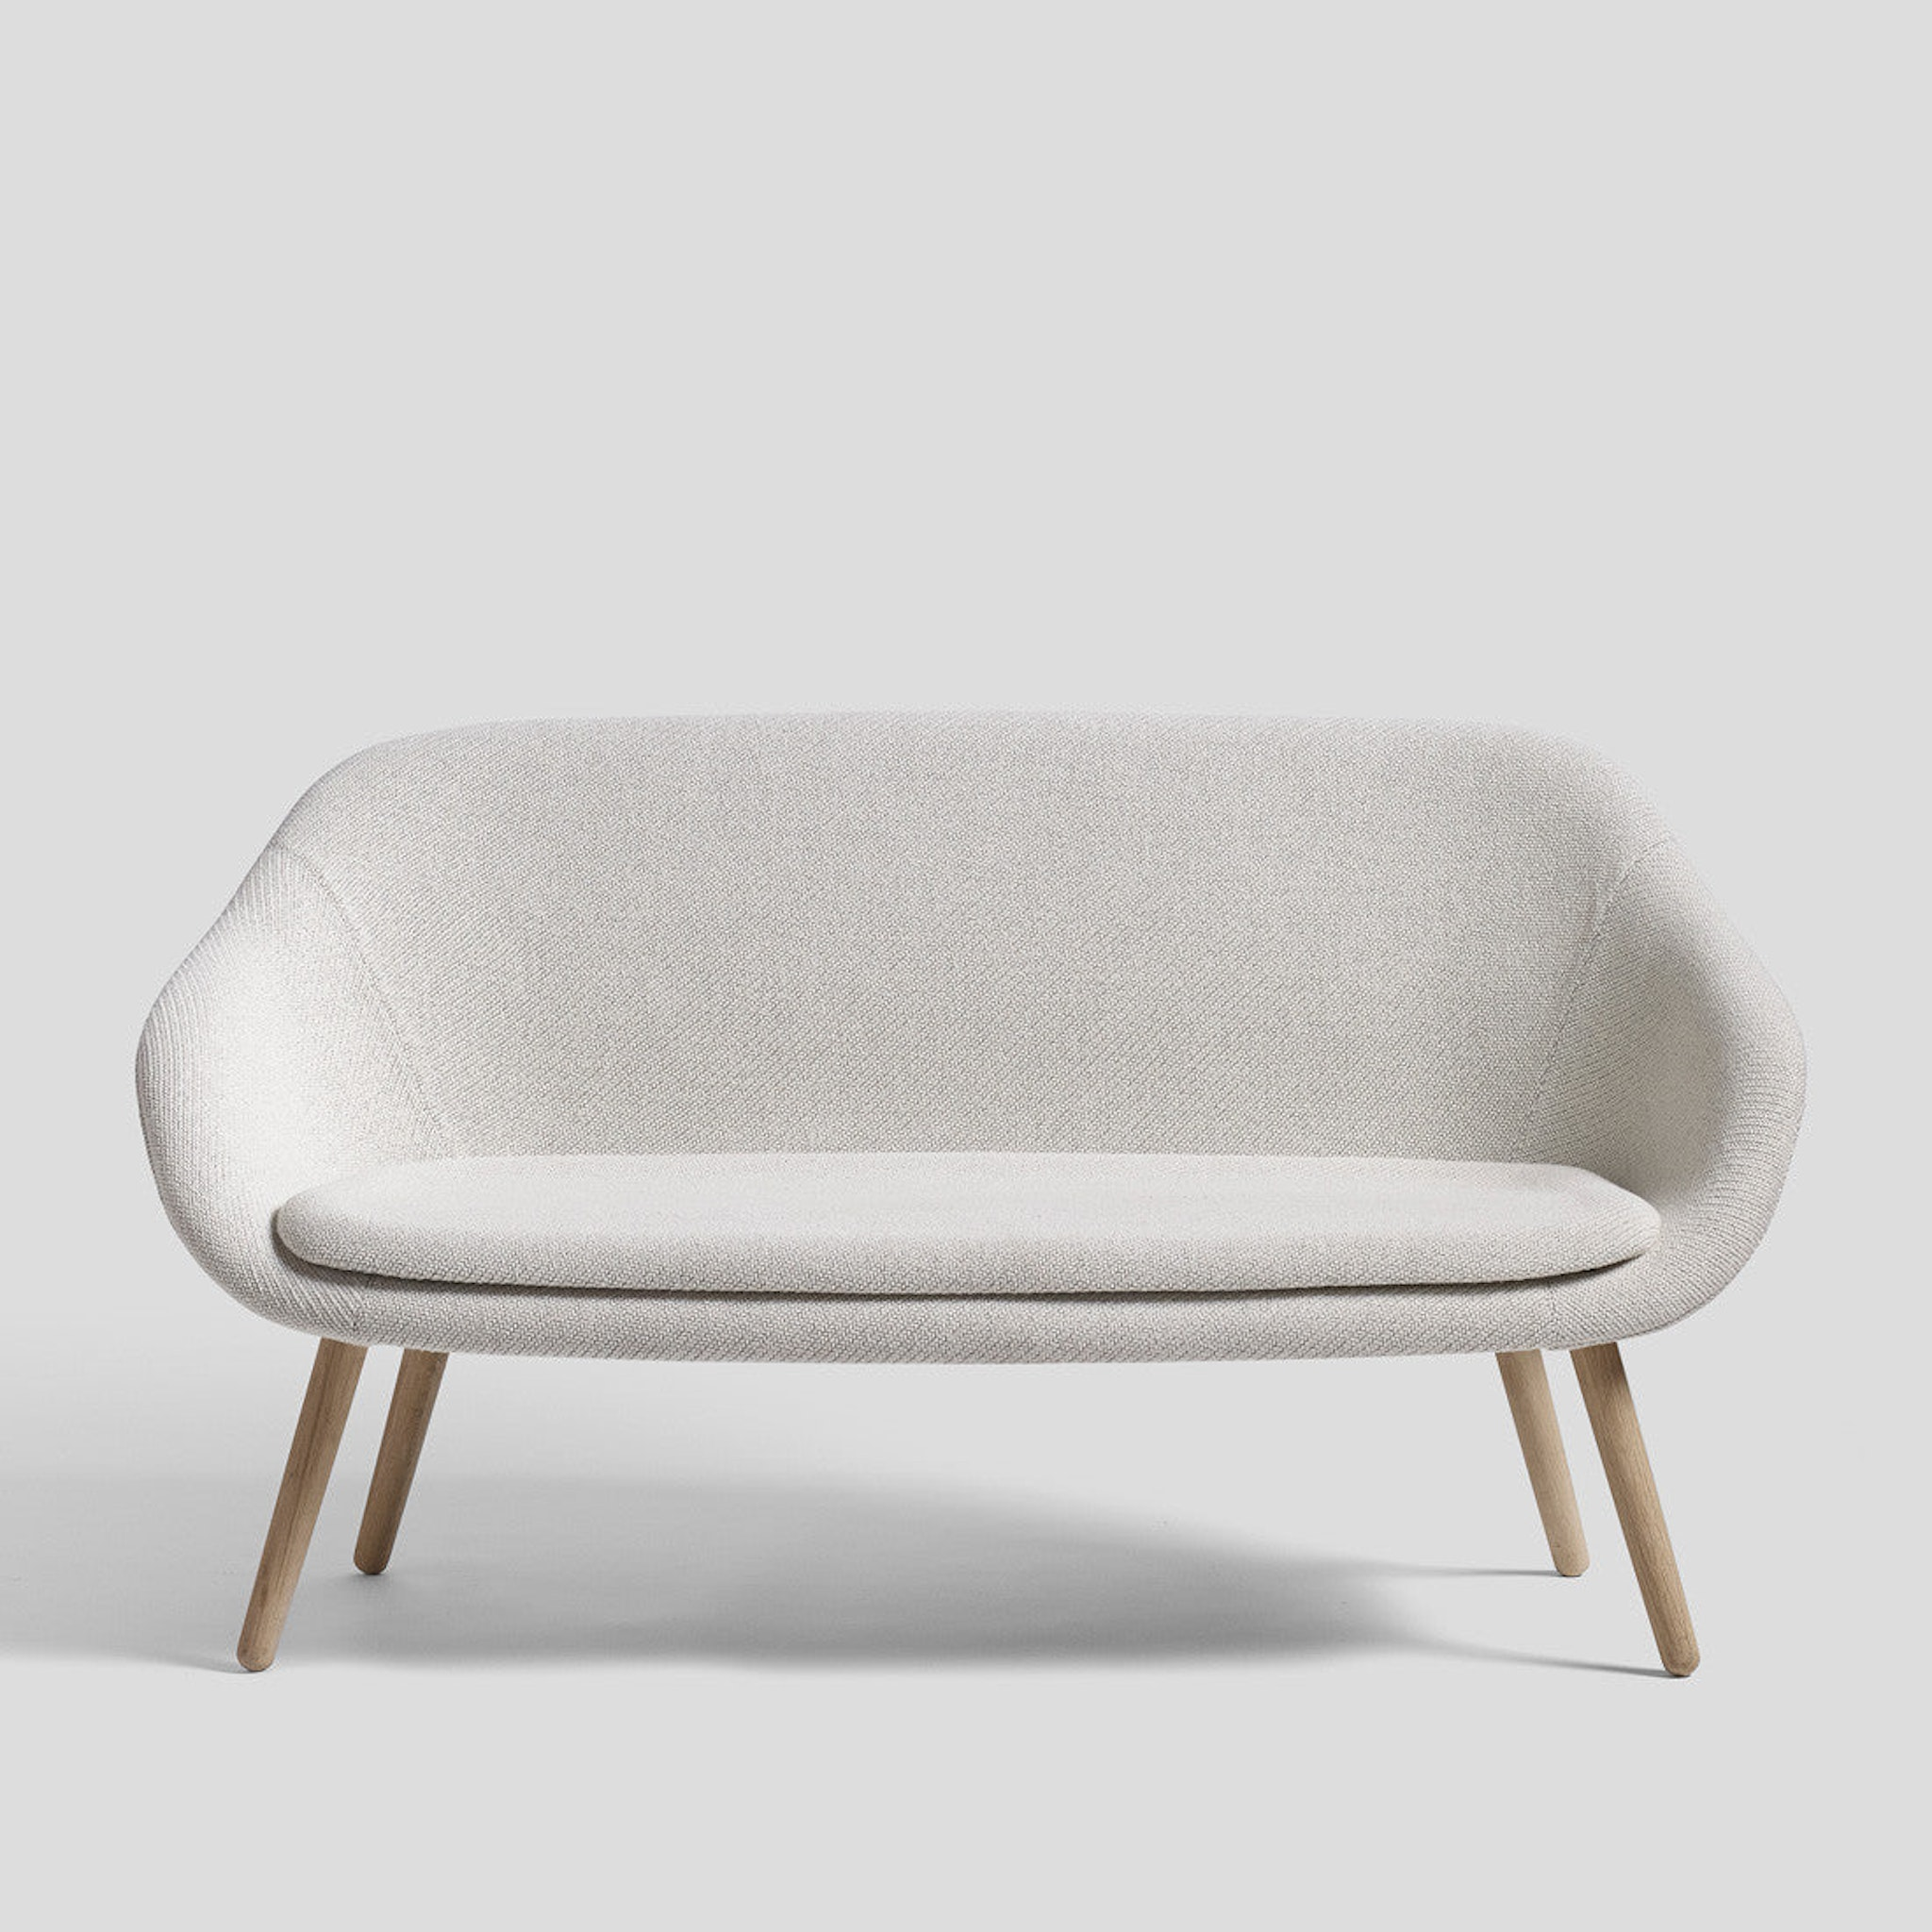 About a Lounge Sofa by Hee Welling